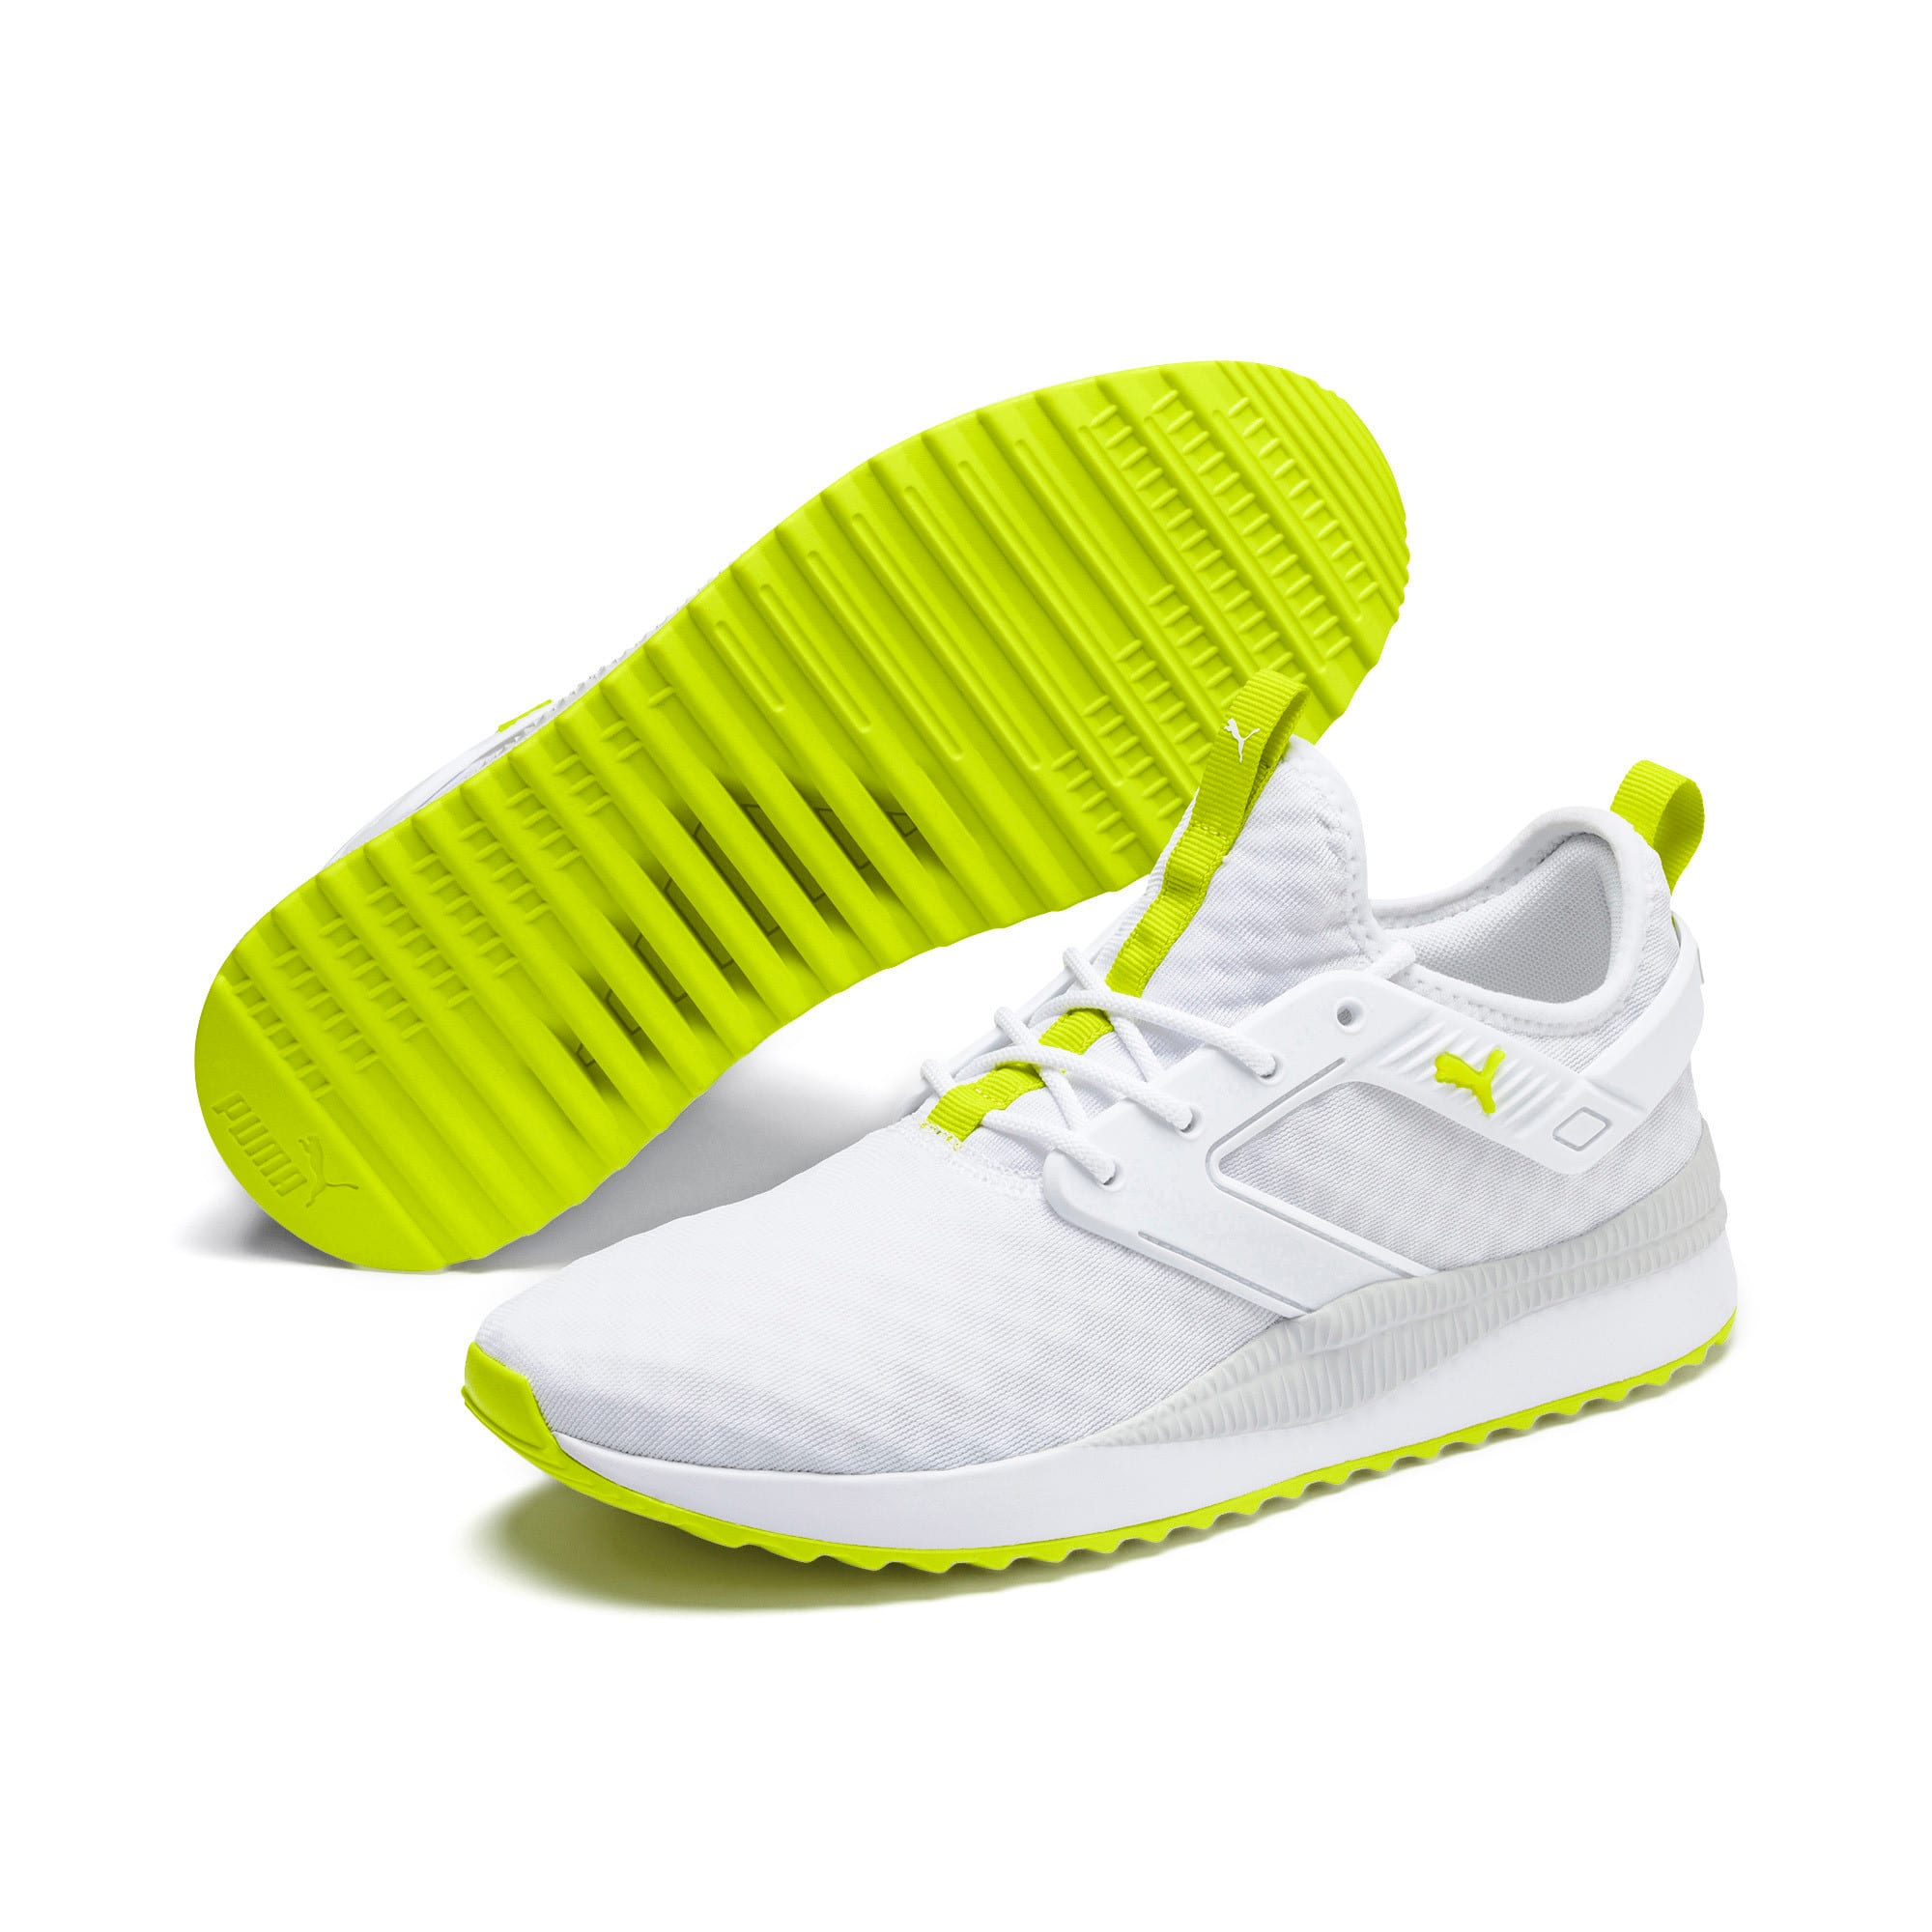 Thumbnail 3 of Pacer Next Excel Core Sneakers, Puma White-Nrgy Yellow, medium